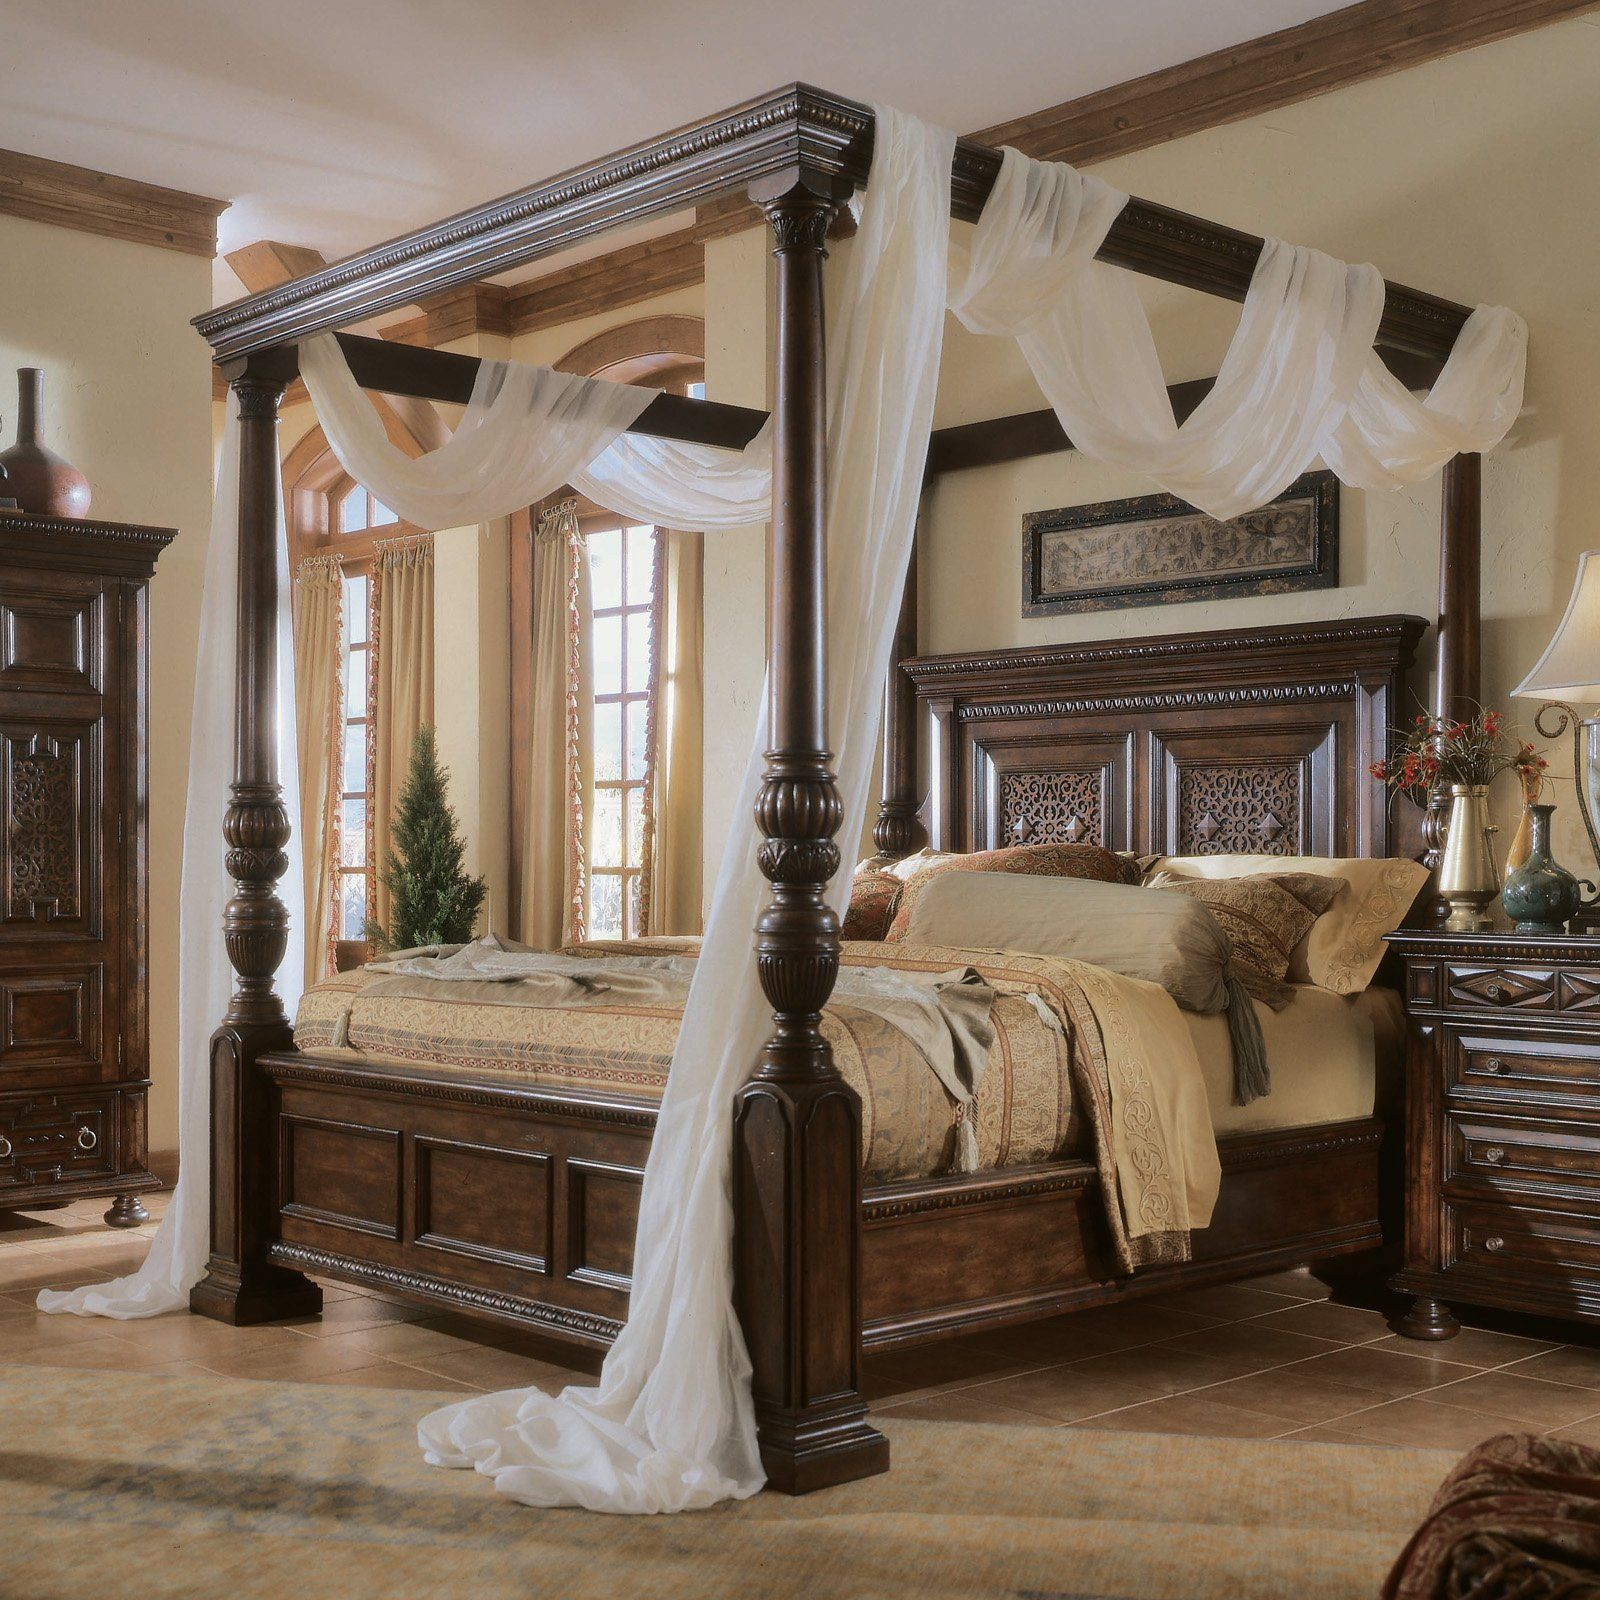 15 Most Beautiful Decorated And Designed Beds Canopy Damask Curtains And Tudor Style